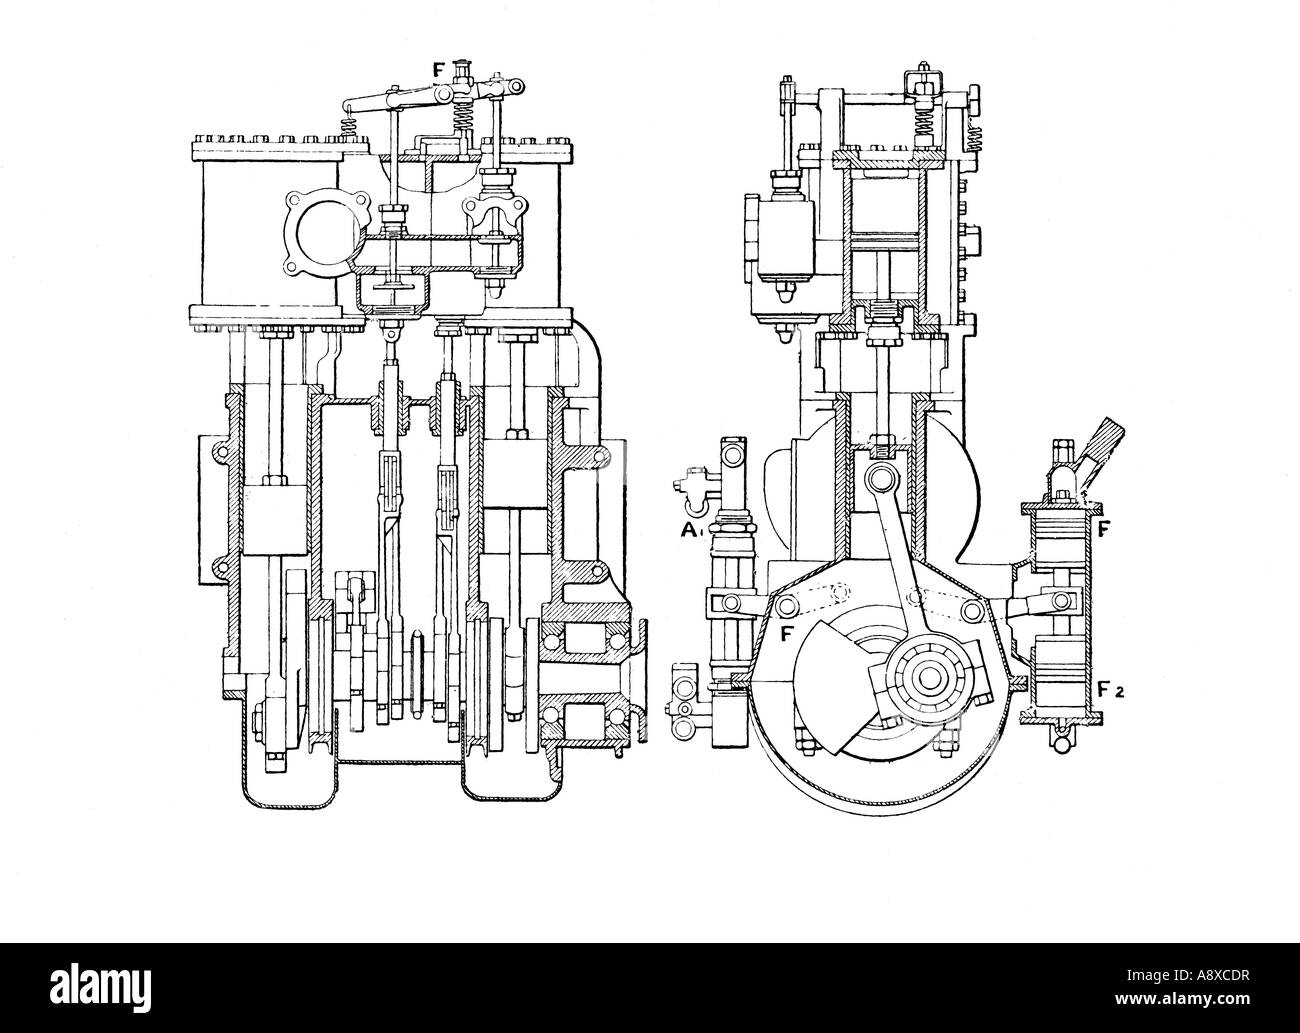 side and end sectional elevation diagrams of white 30 horse power rh alamy com Model Steam Engine Diagram Industrial Revolution Steam Engine